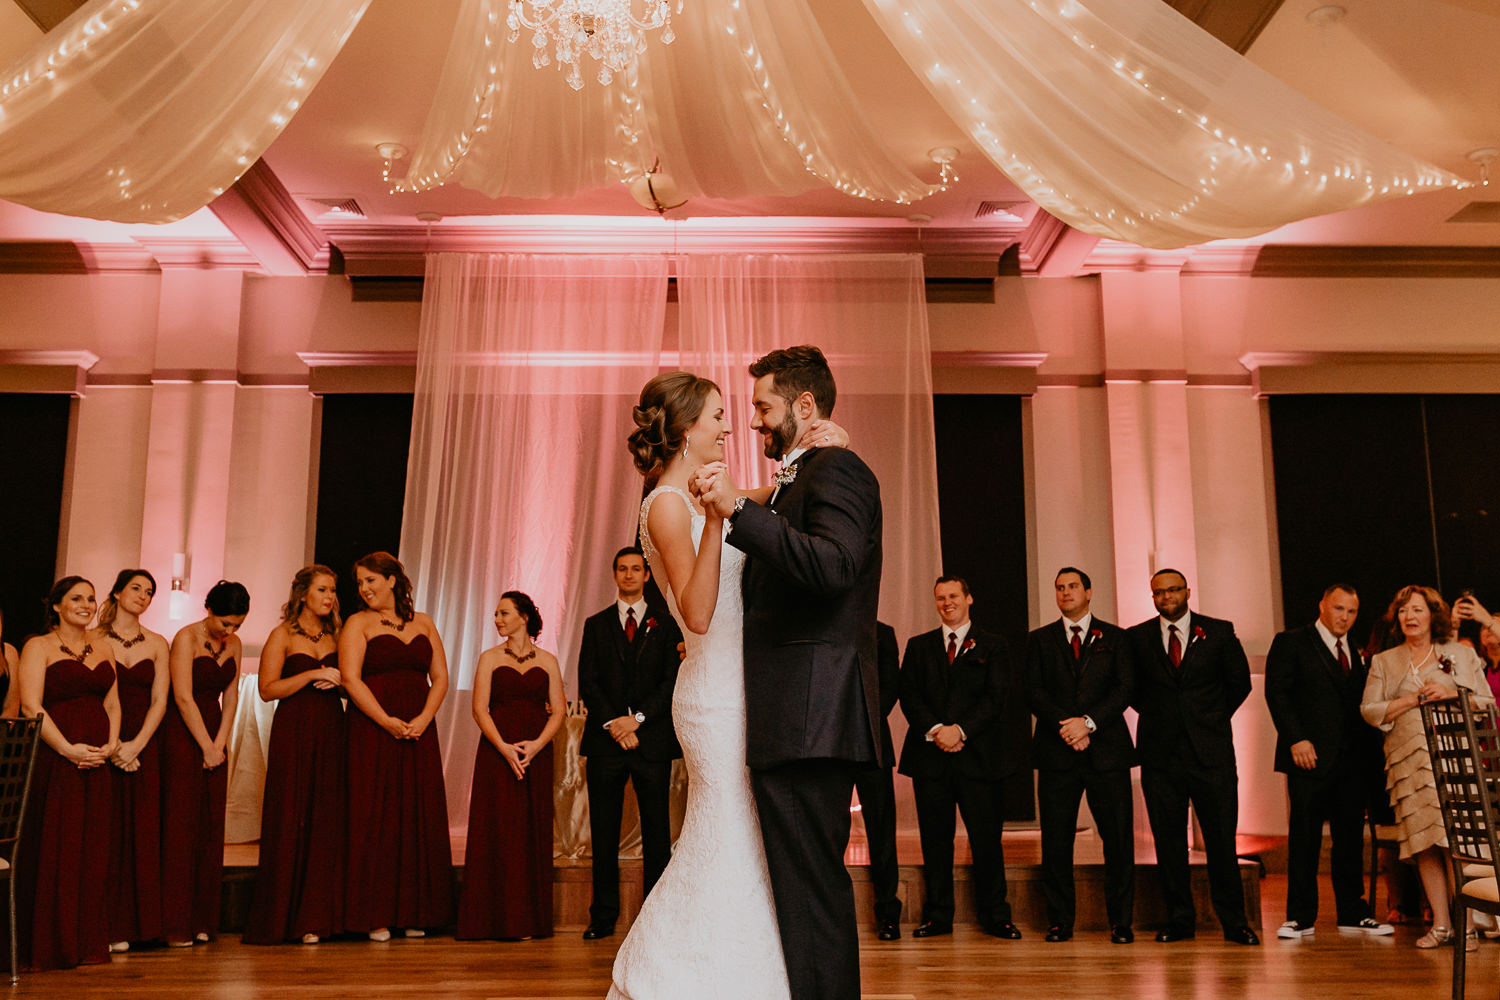 wide view of newlyweds facing each other during first dance